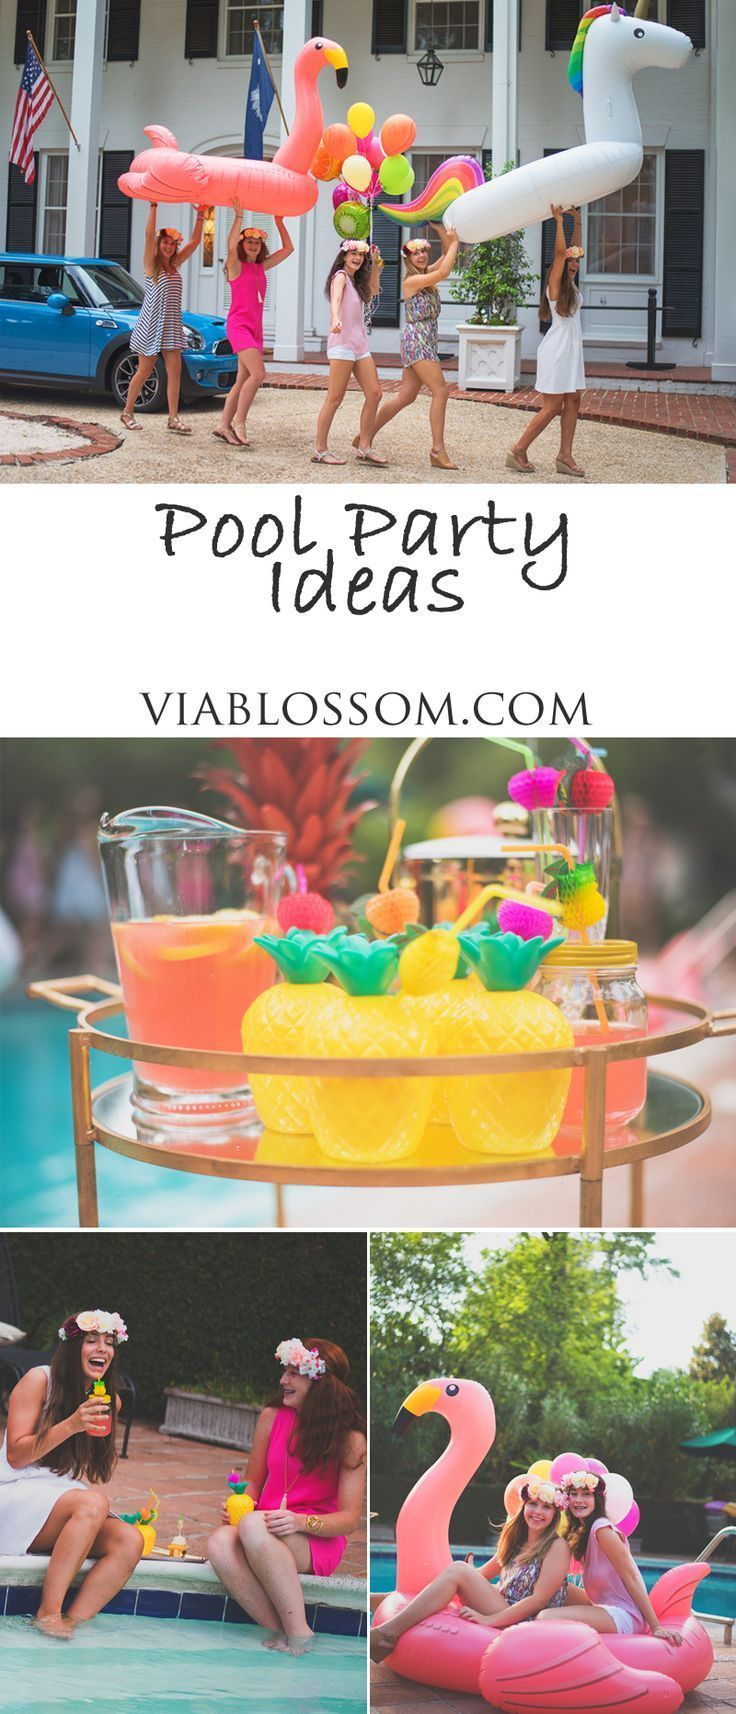 How to throw a fun pool party at the Via Blossom Blog!! All the